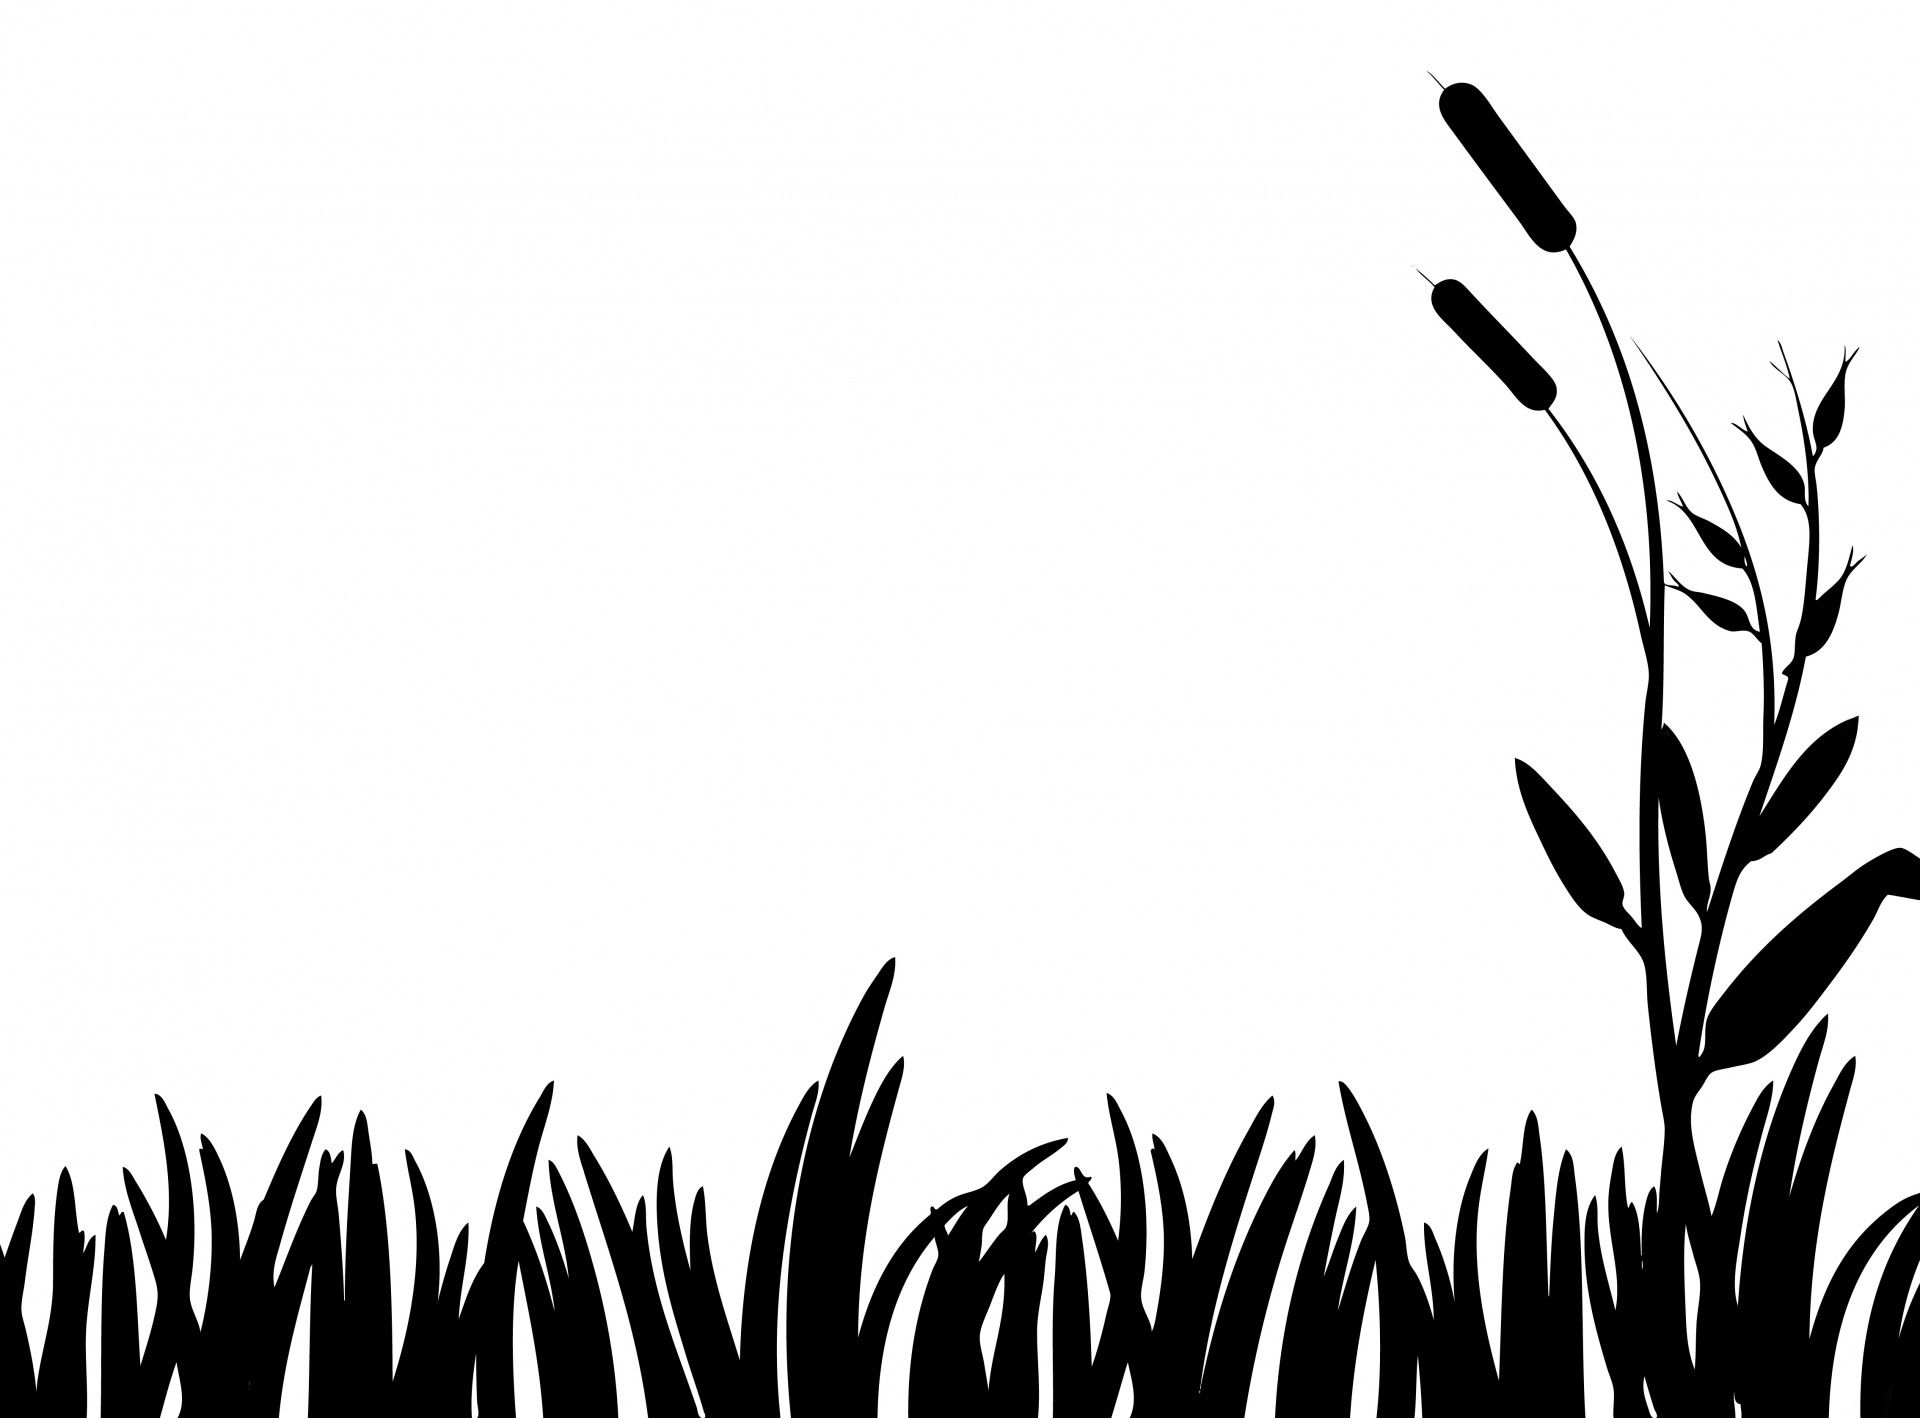 Grass clipart easy. Simple silhouette at getdrawings